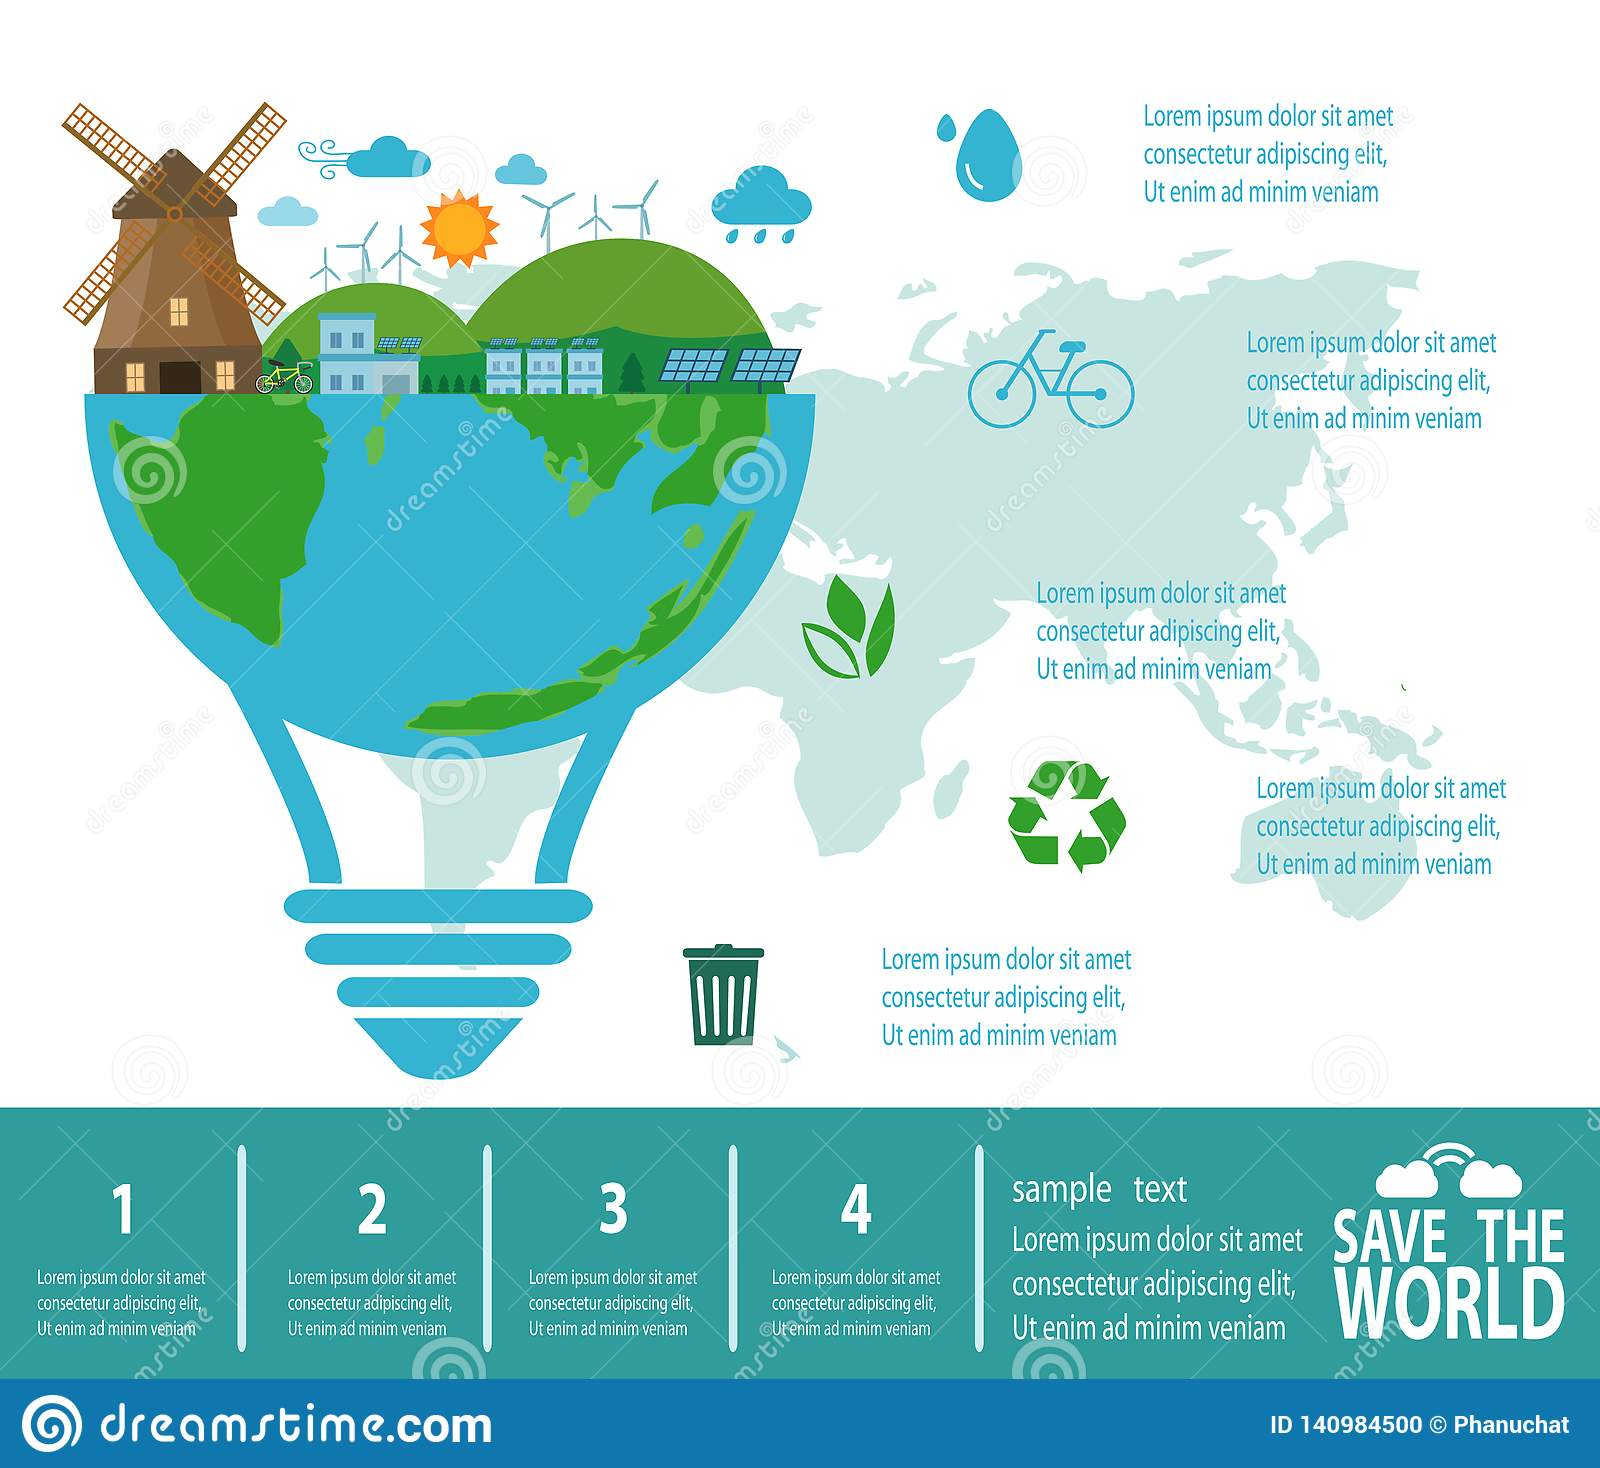 Save The World Infographic Save Planet Earth Day